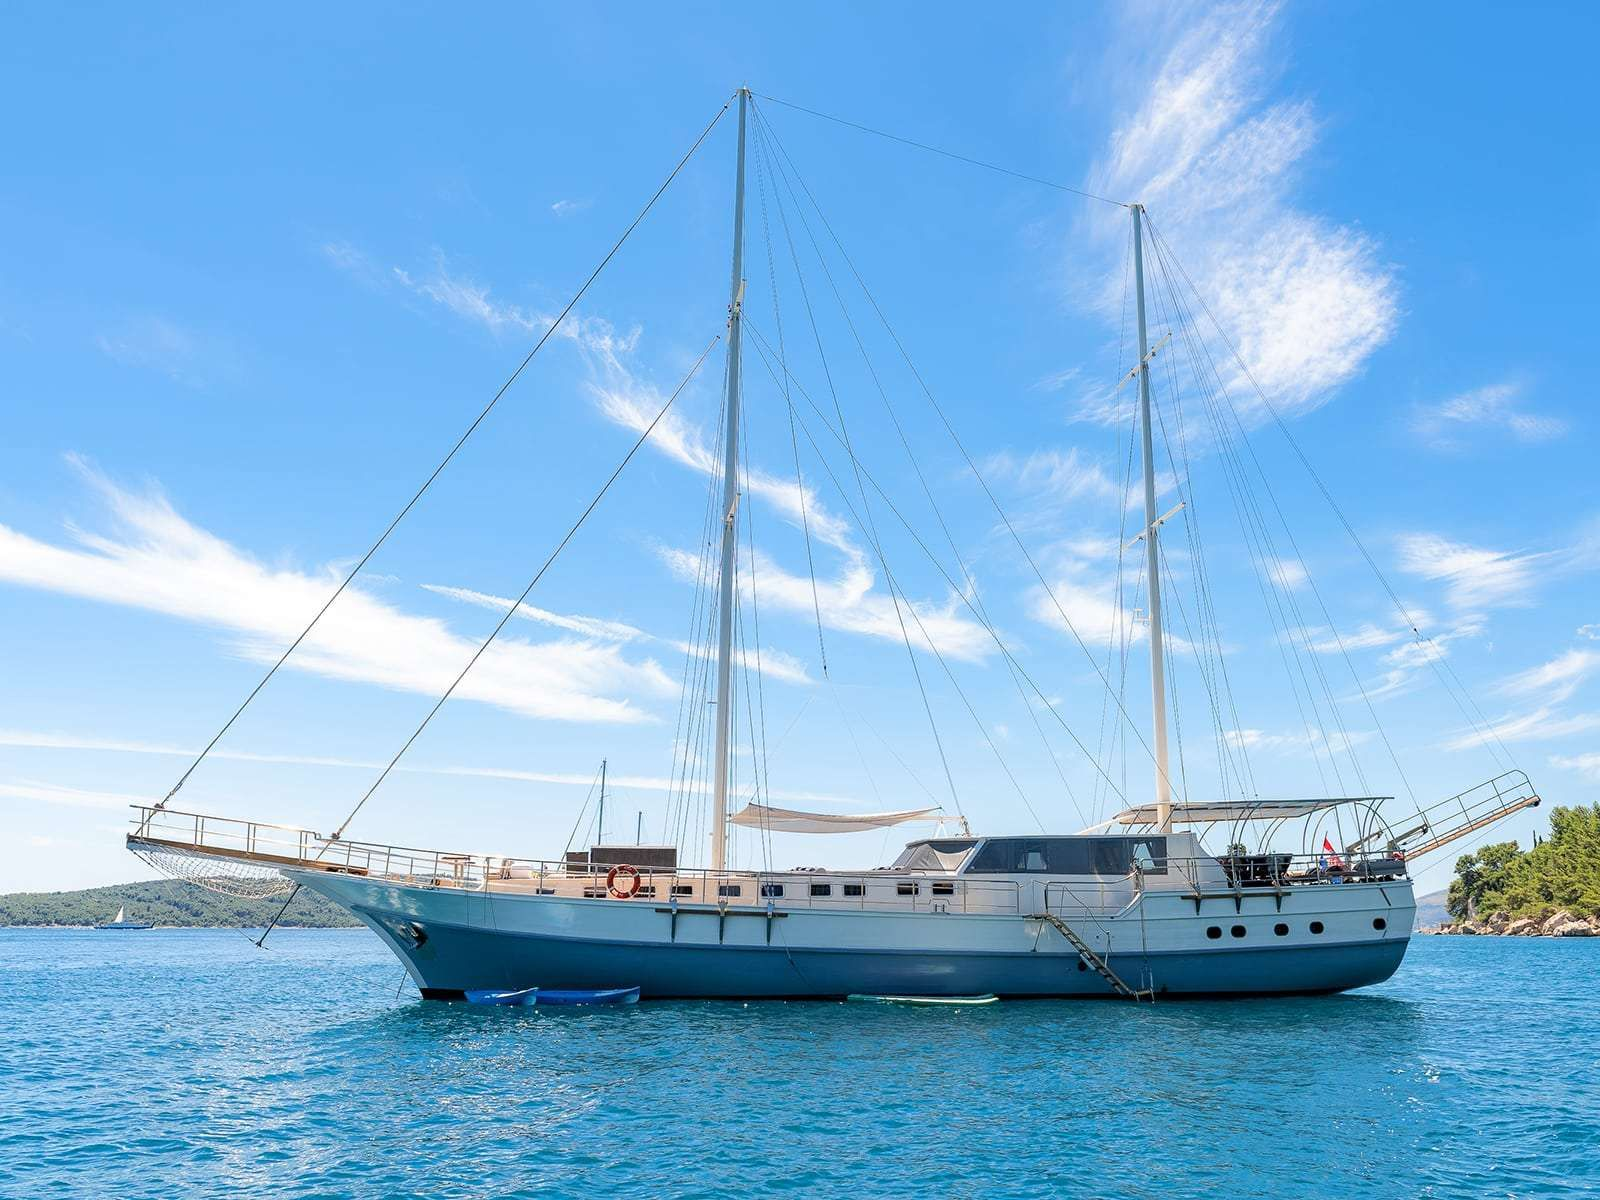 Gulet Nautilus Yacht Charter - Ritzy Charters